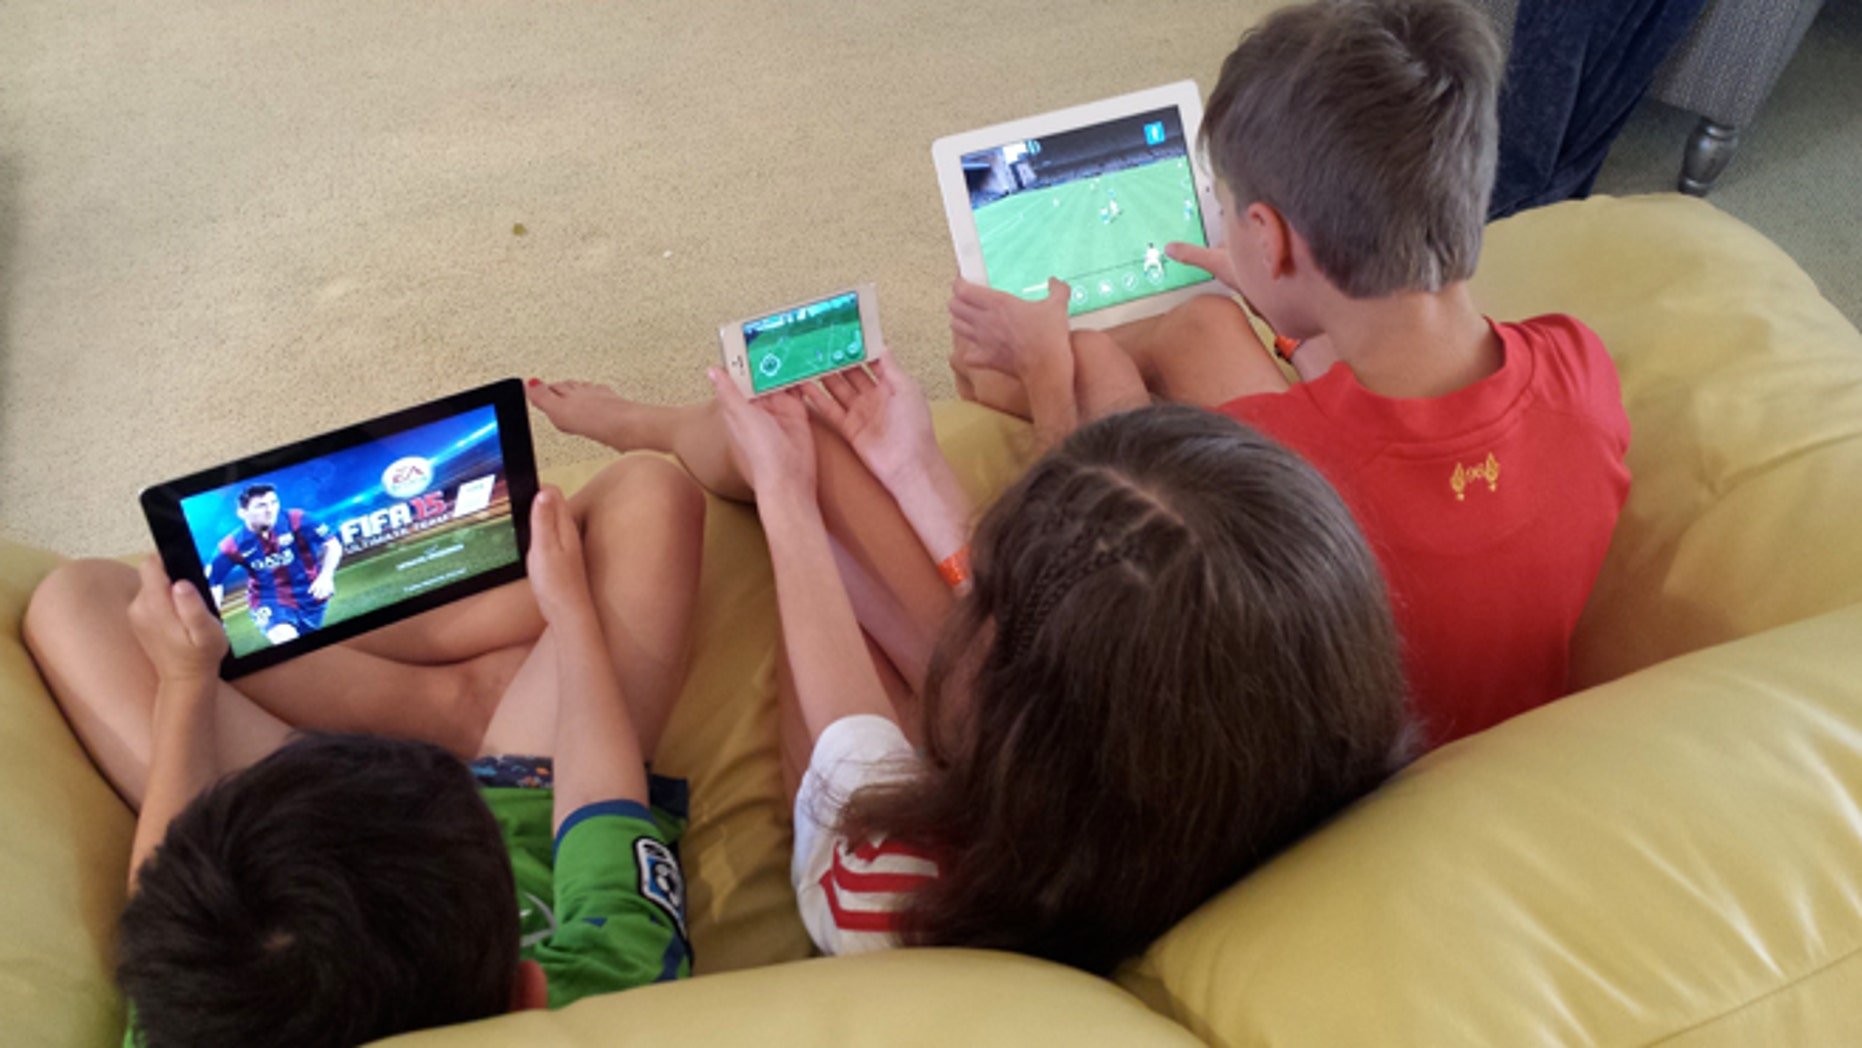 Children enjoying FIFA 2015. (Photo: Ben Evansky/Fox News Latino)